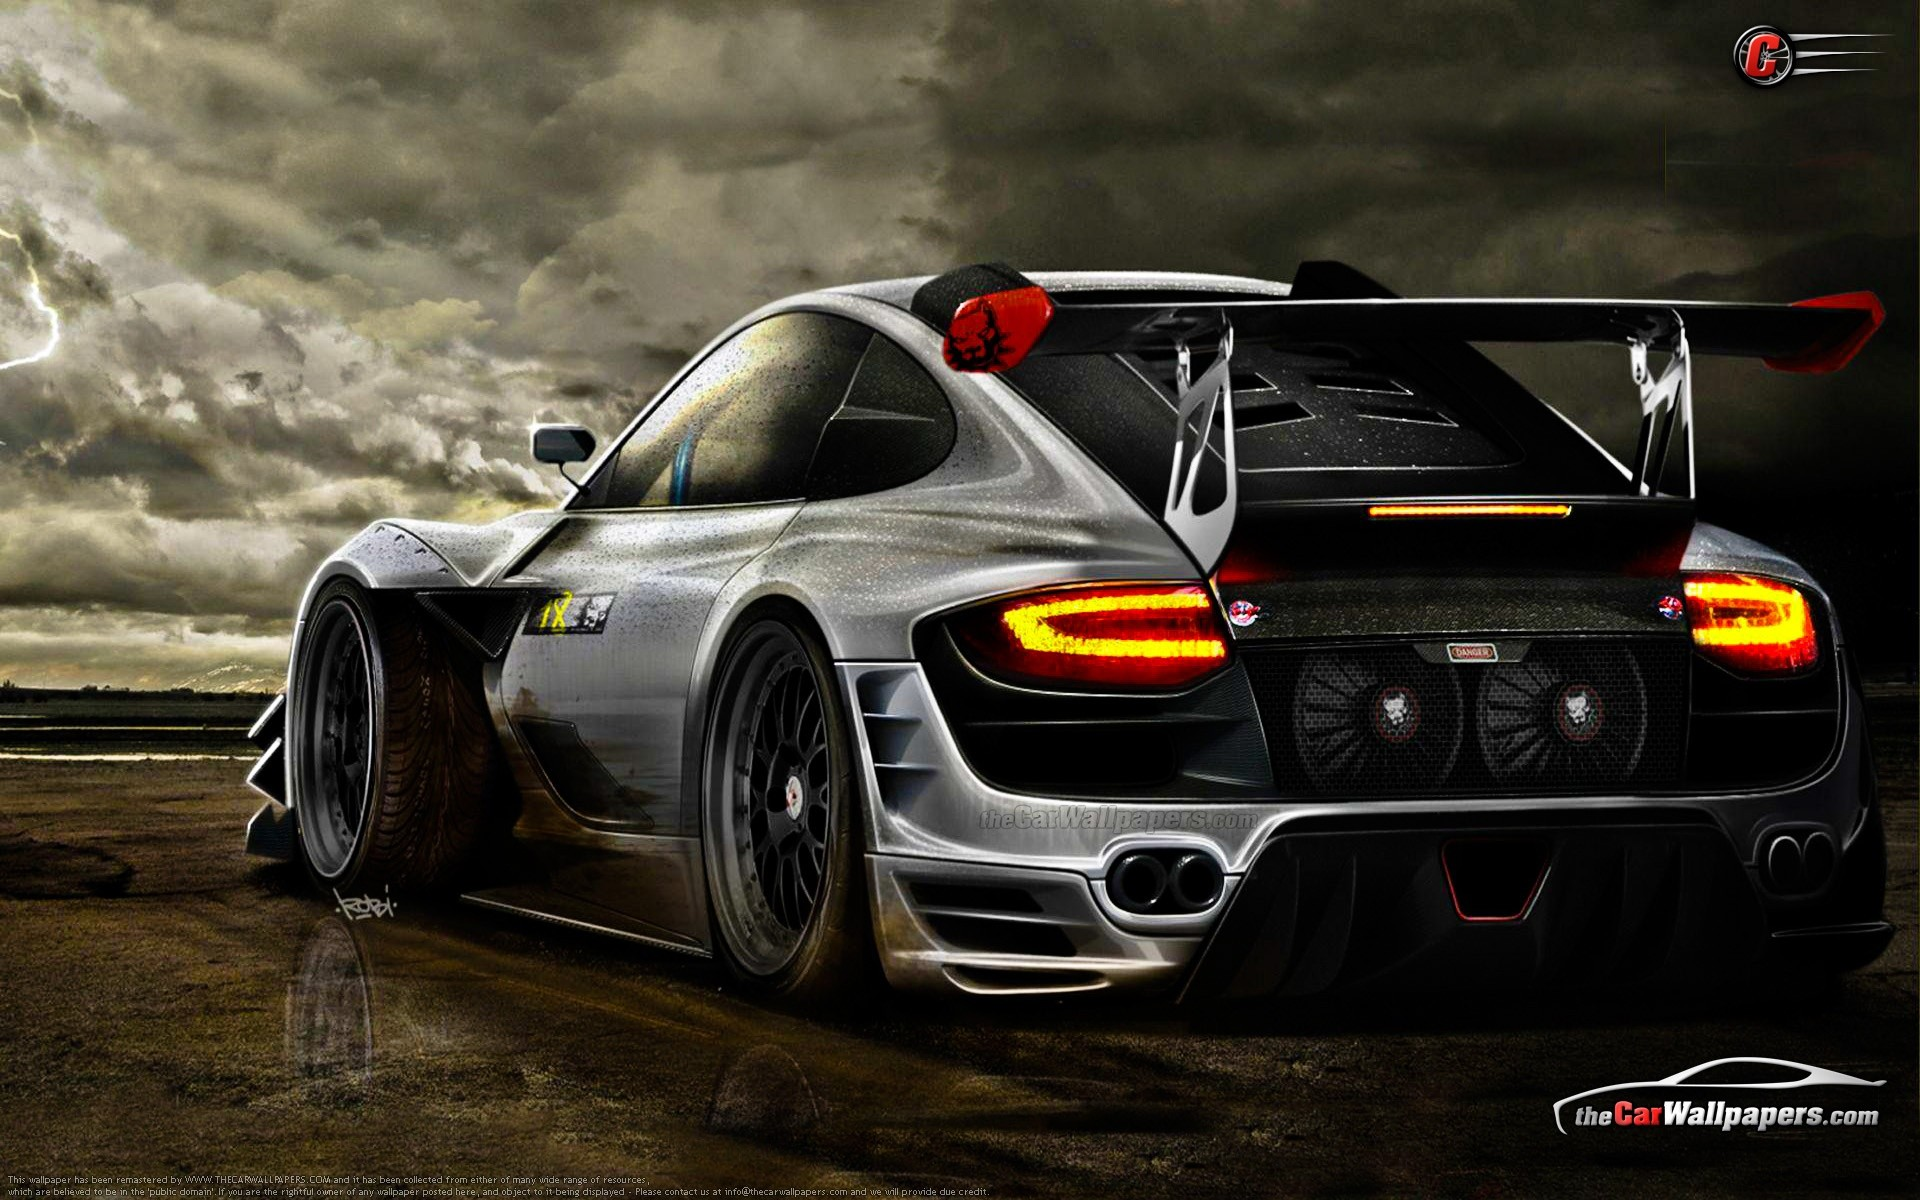 Light Porsche Cars Sports Cars Porsche Black Cars Porsche Carrera Wallpaper X Wallpaperup